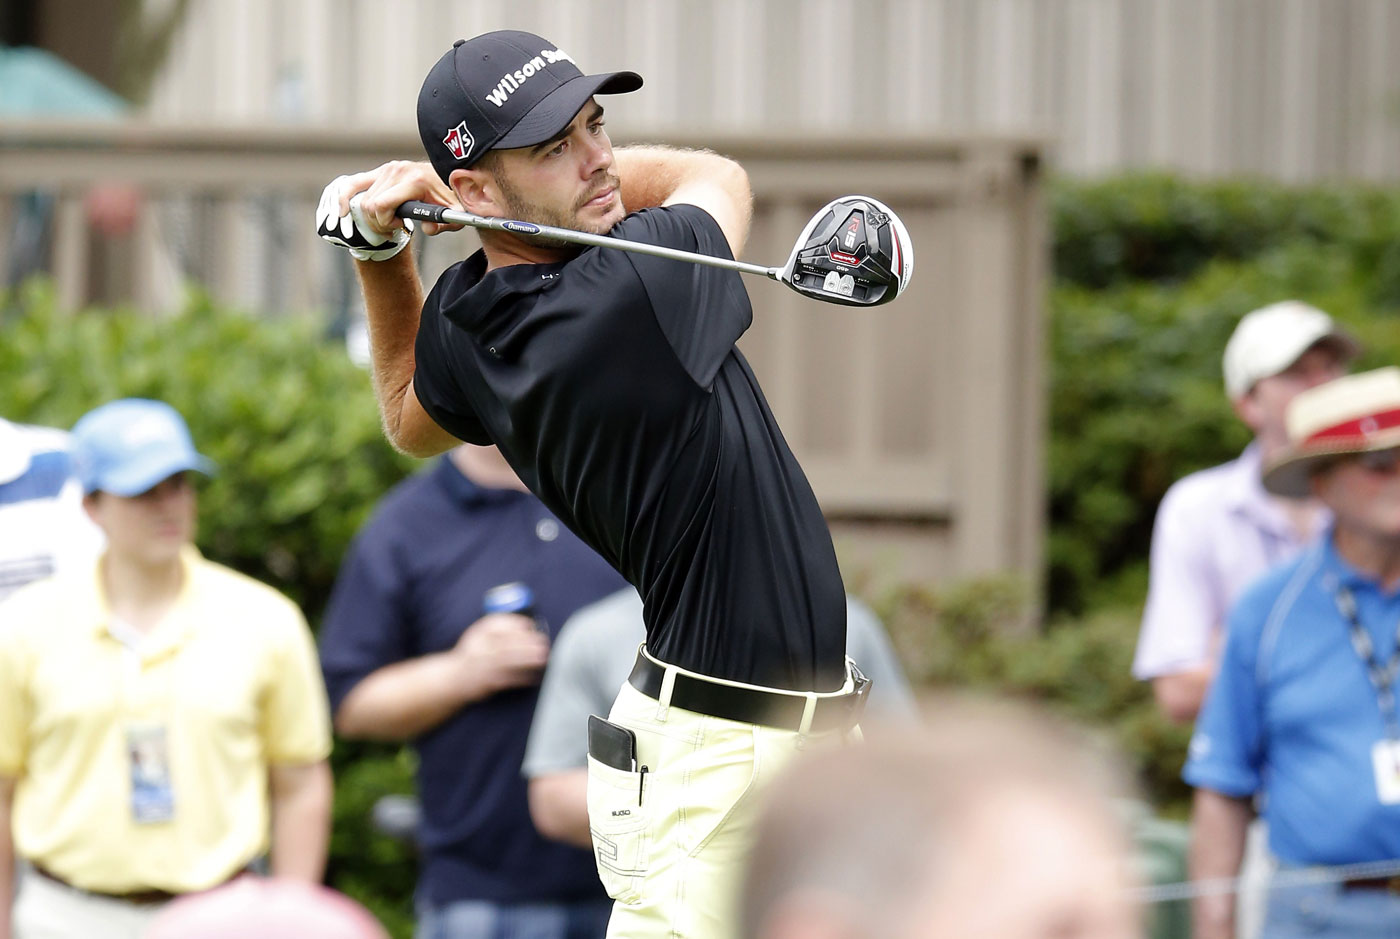 Troy Merritt leads the RBC Heritage at Hilton Head headed to Sunday's final round.